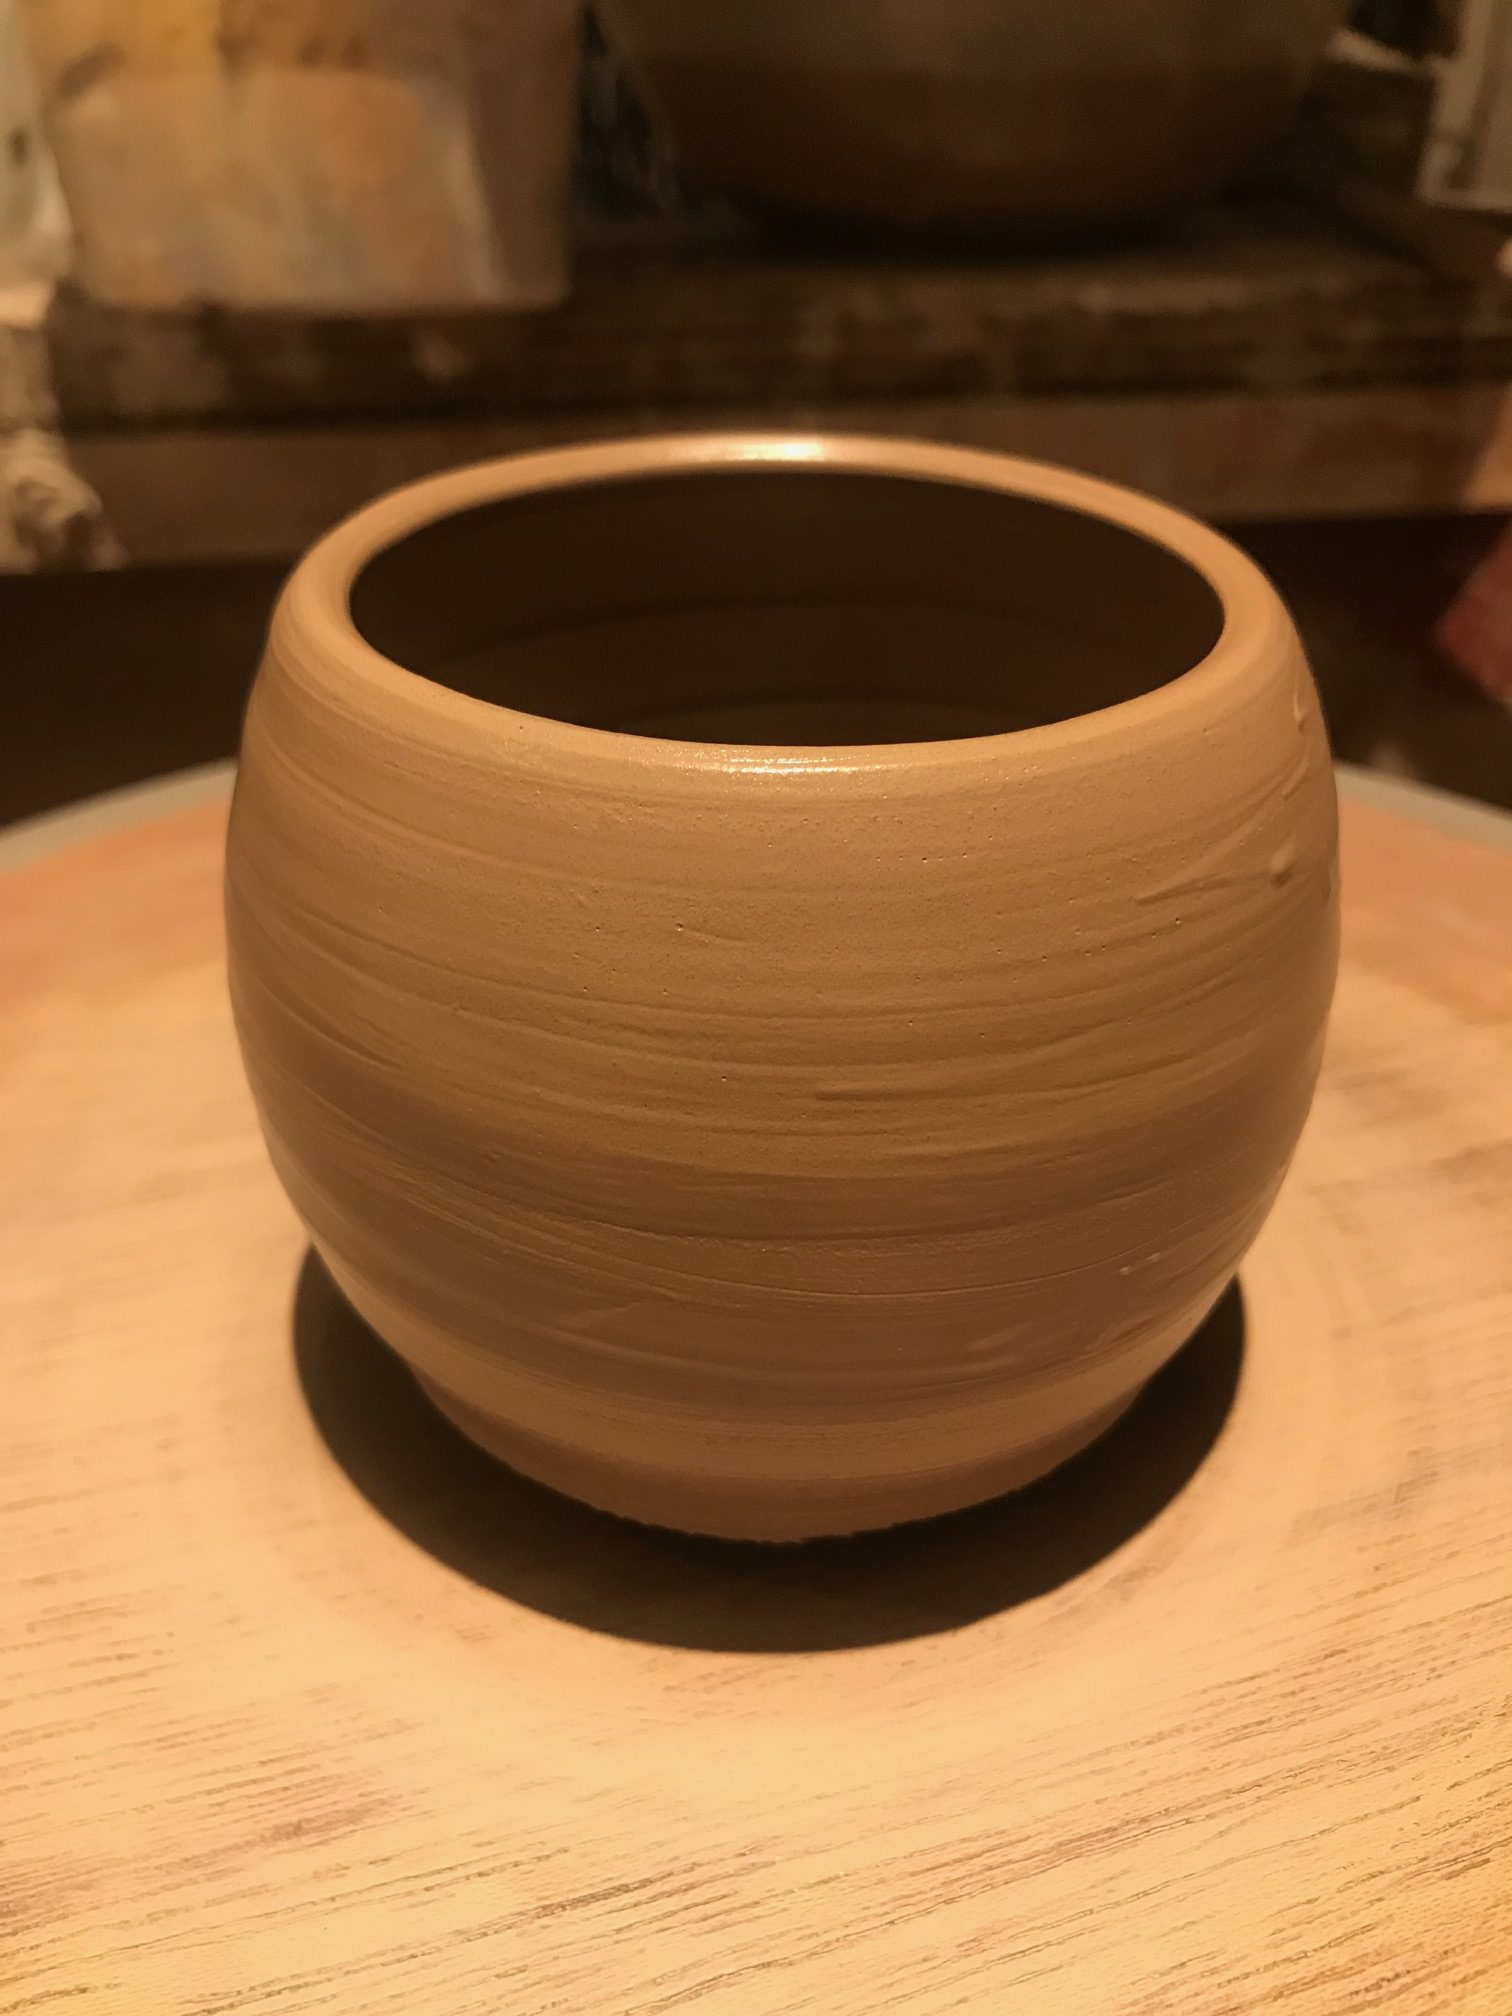 Day 47: 100 Pots in 100 Days